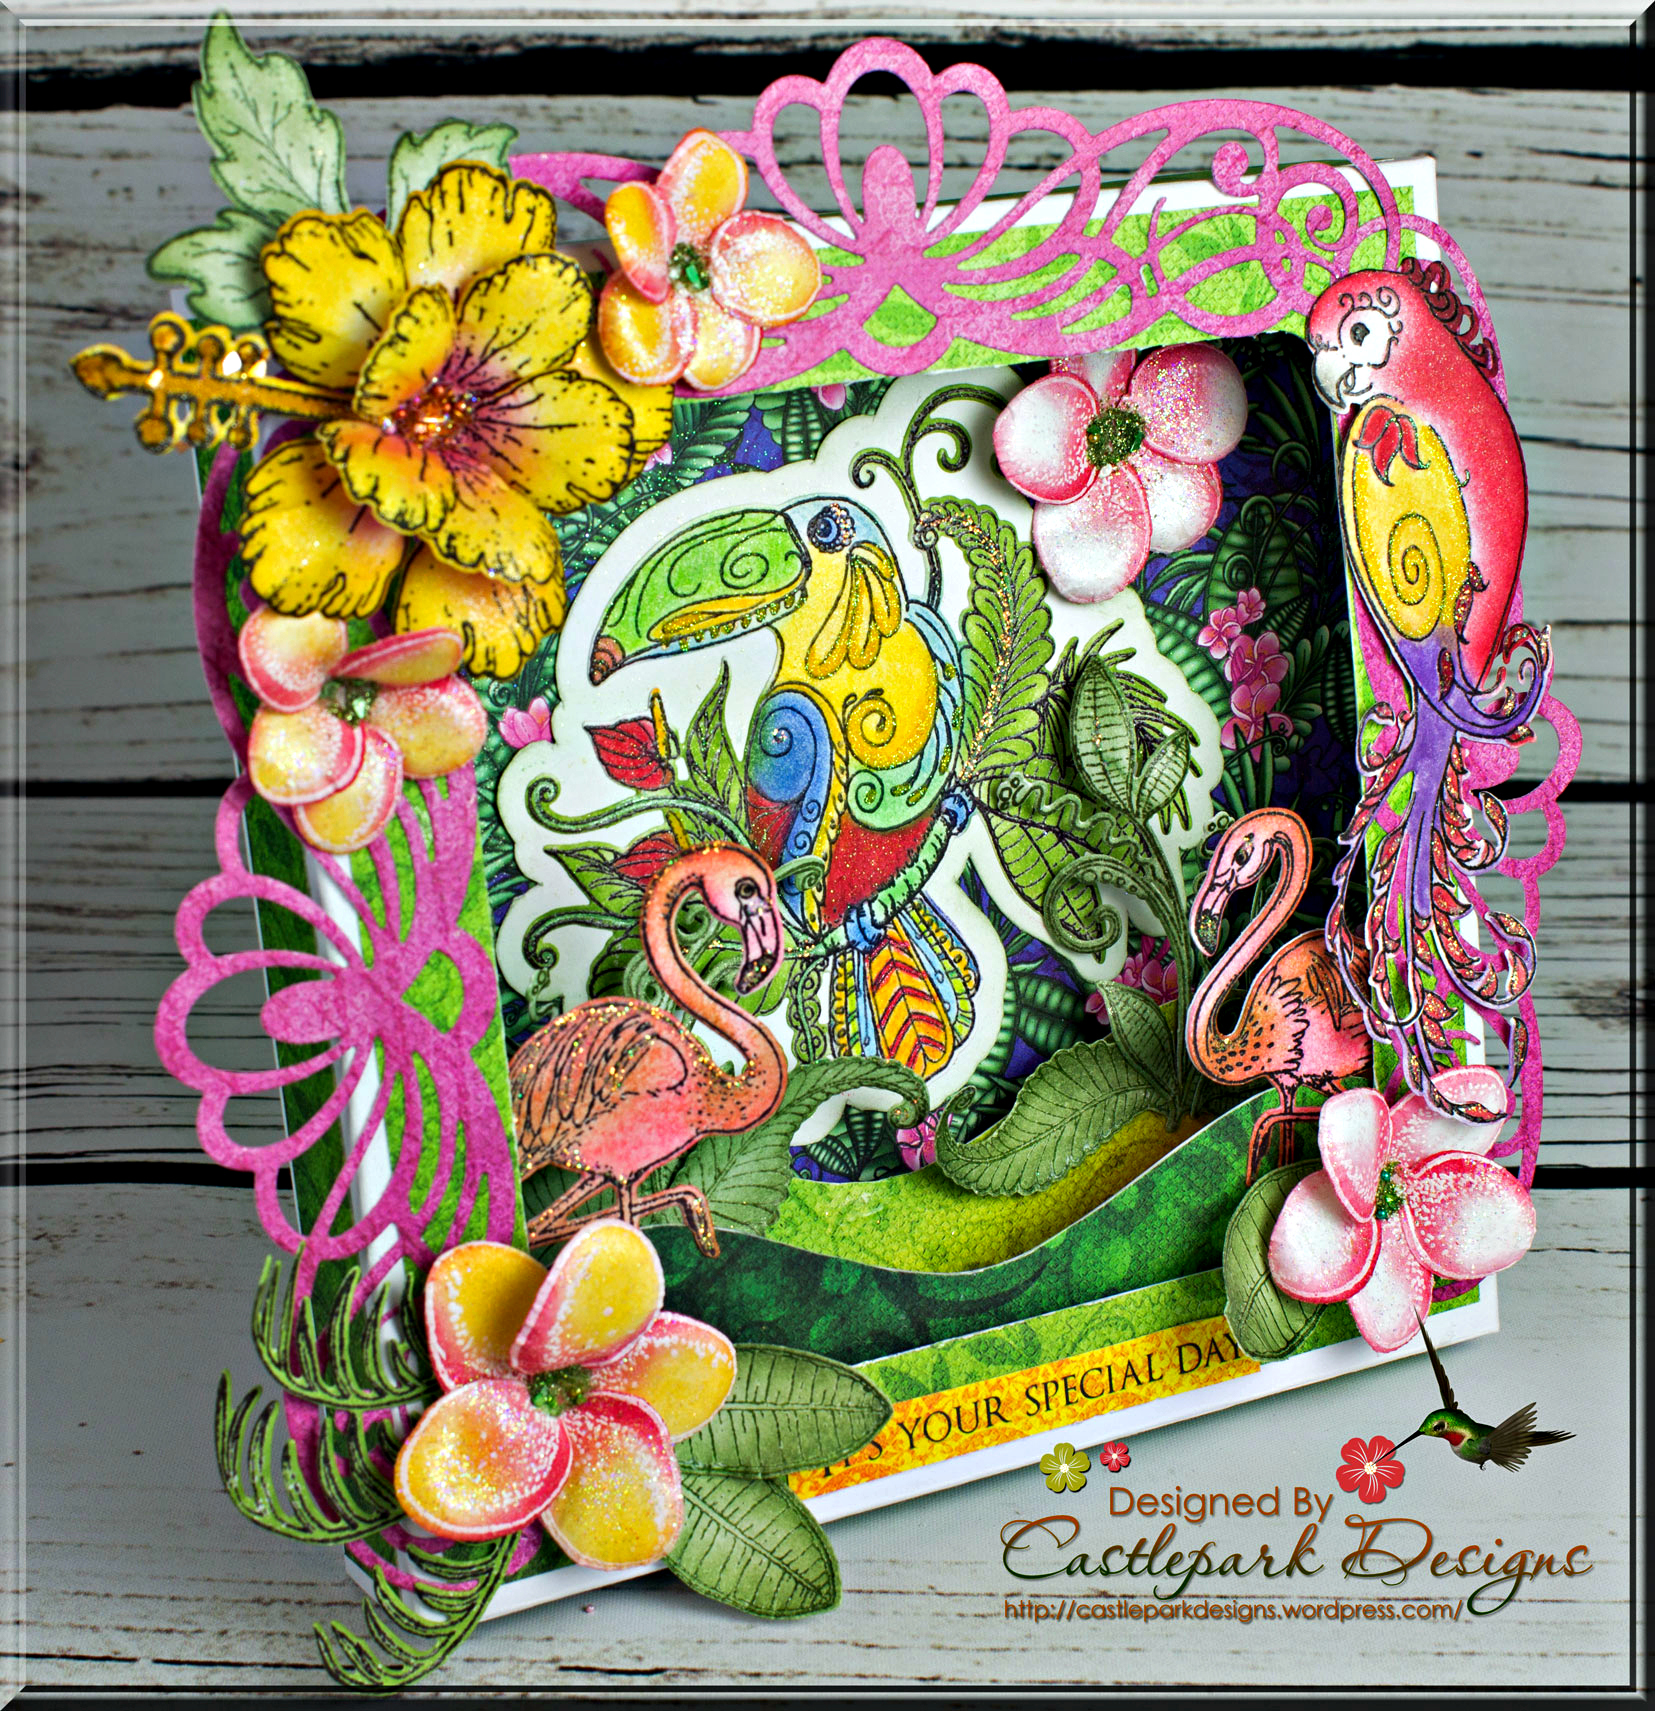 joann-larkin-tropical-shadow-box1 & Tropical Paradise Shadow Box | Castlepark Designs Aboutintivar.Com